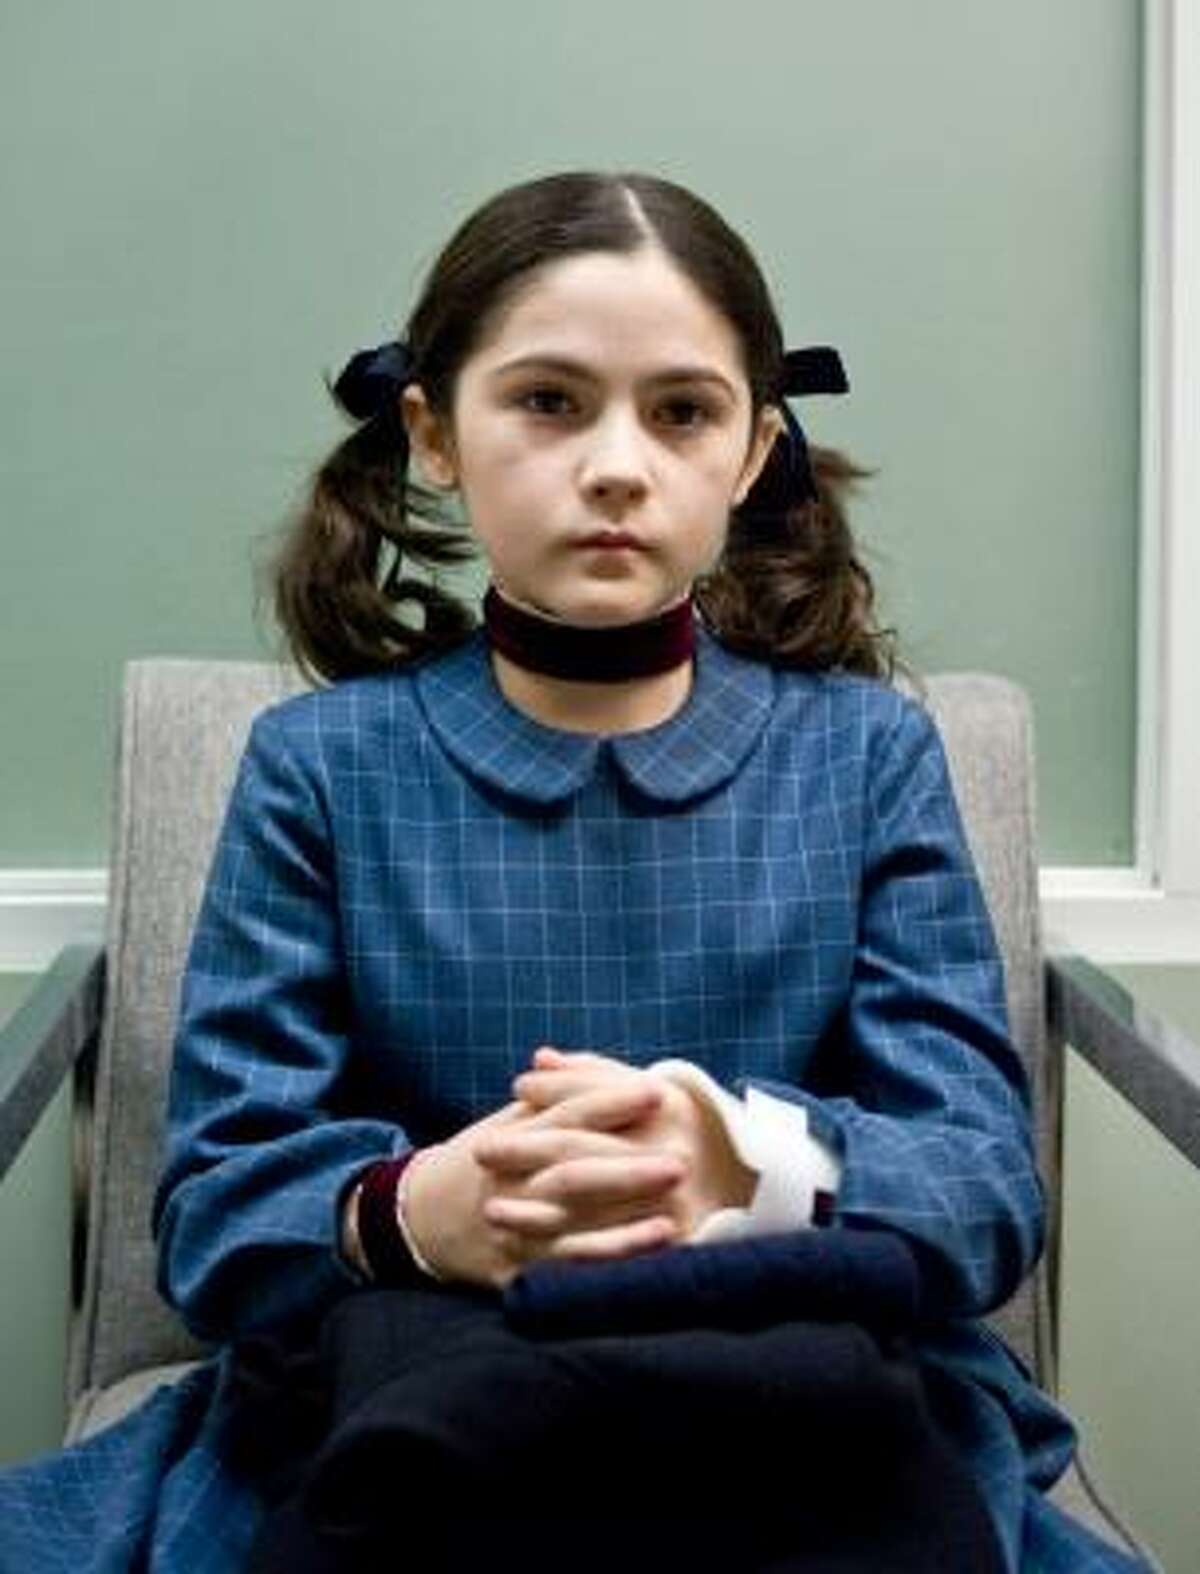 Orphan , $17.99, is a horror flick about an adopted orphan child that has bad things happen around her.